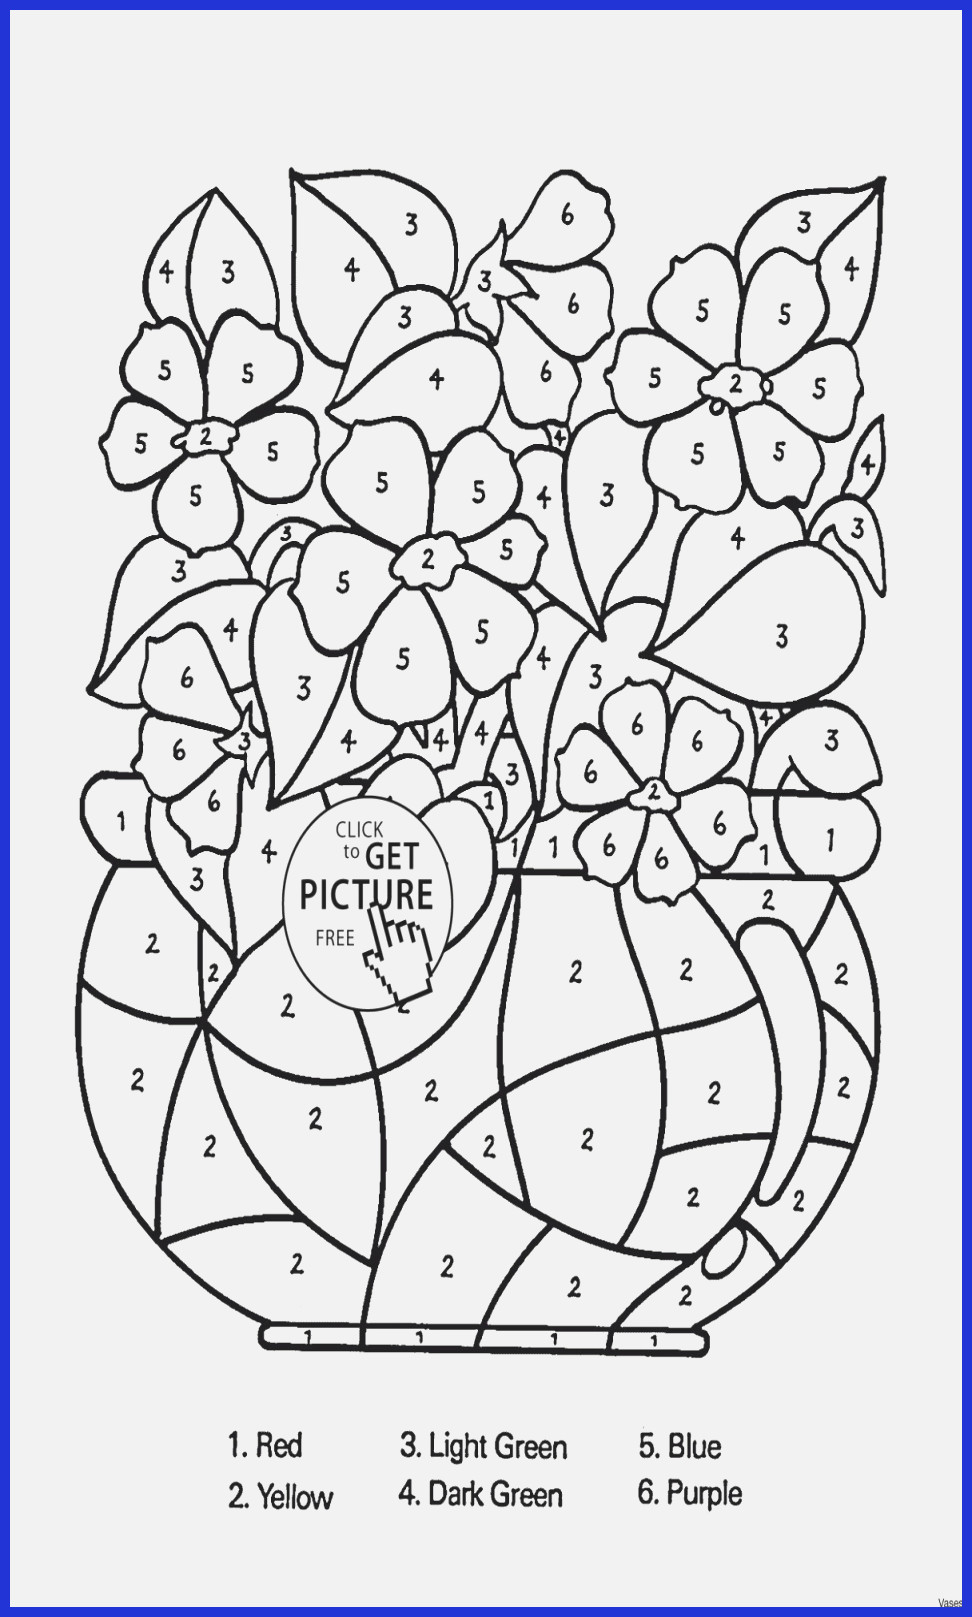 Free Printable Pokemon Coloring Pages Coloring Pages Panda Coloring Page Book Pages Pokemon Free